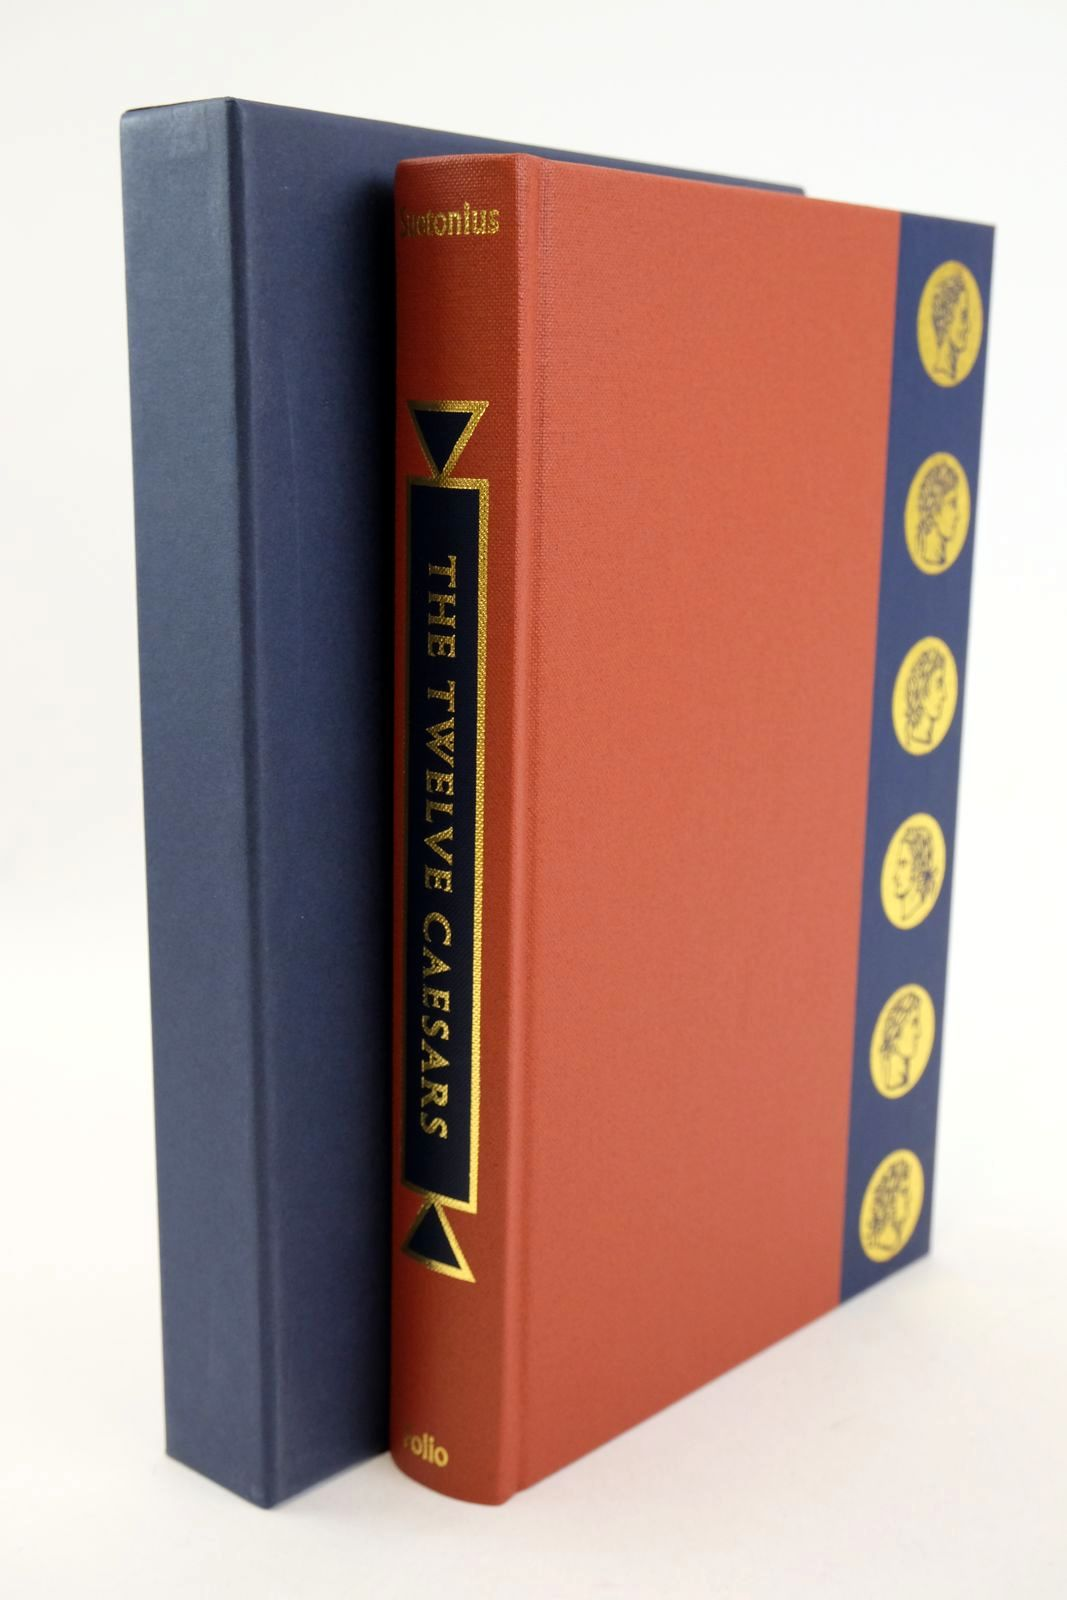 Photo of THE TWELVE CAESARS written by Tranquillus, Gaius Suetonius Graves, Robert illustrated by Hawthorn, Raymond published by Folio Society (STOCK CODE: 1318936)  for sale by Stella & Rose's Books